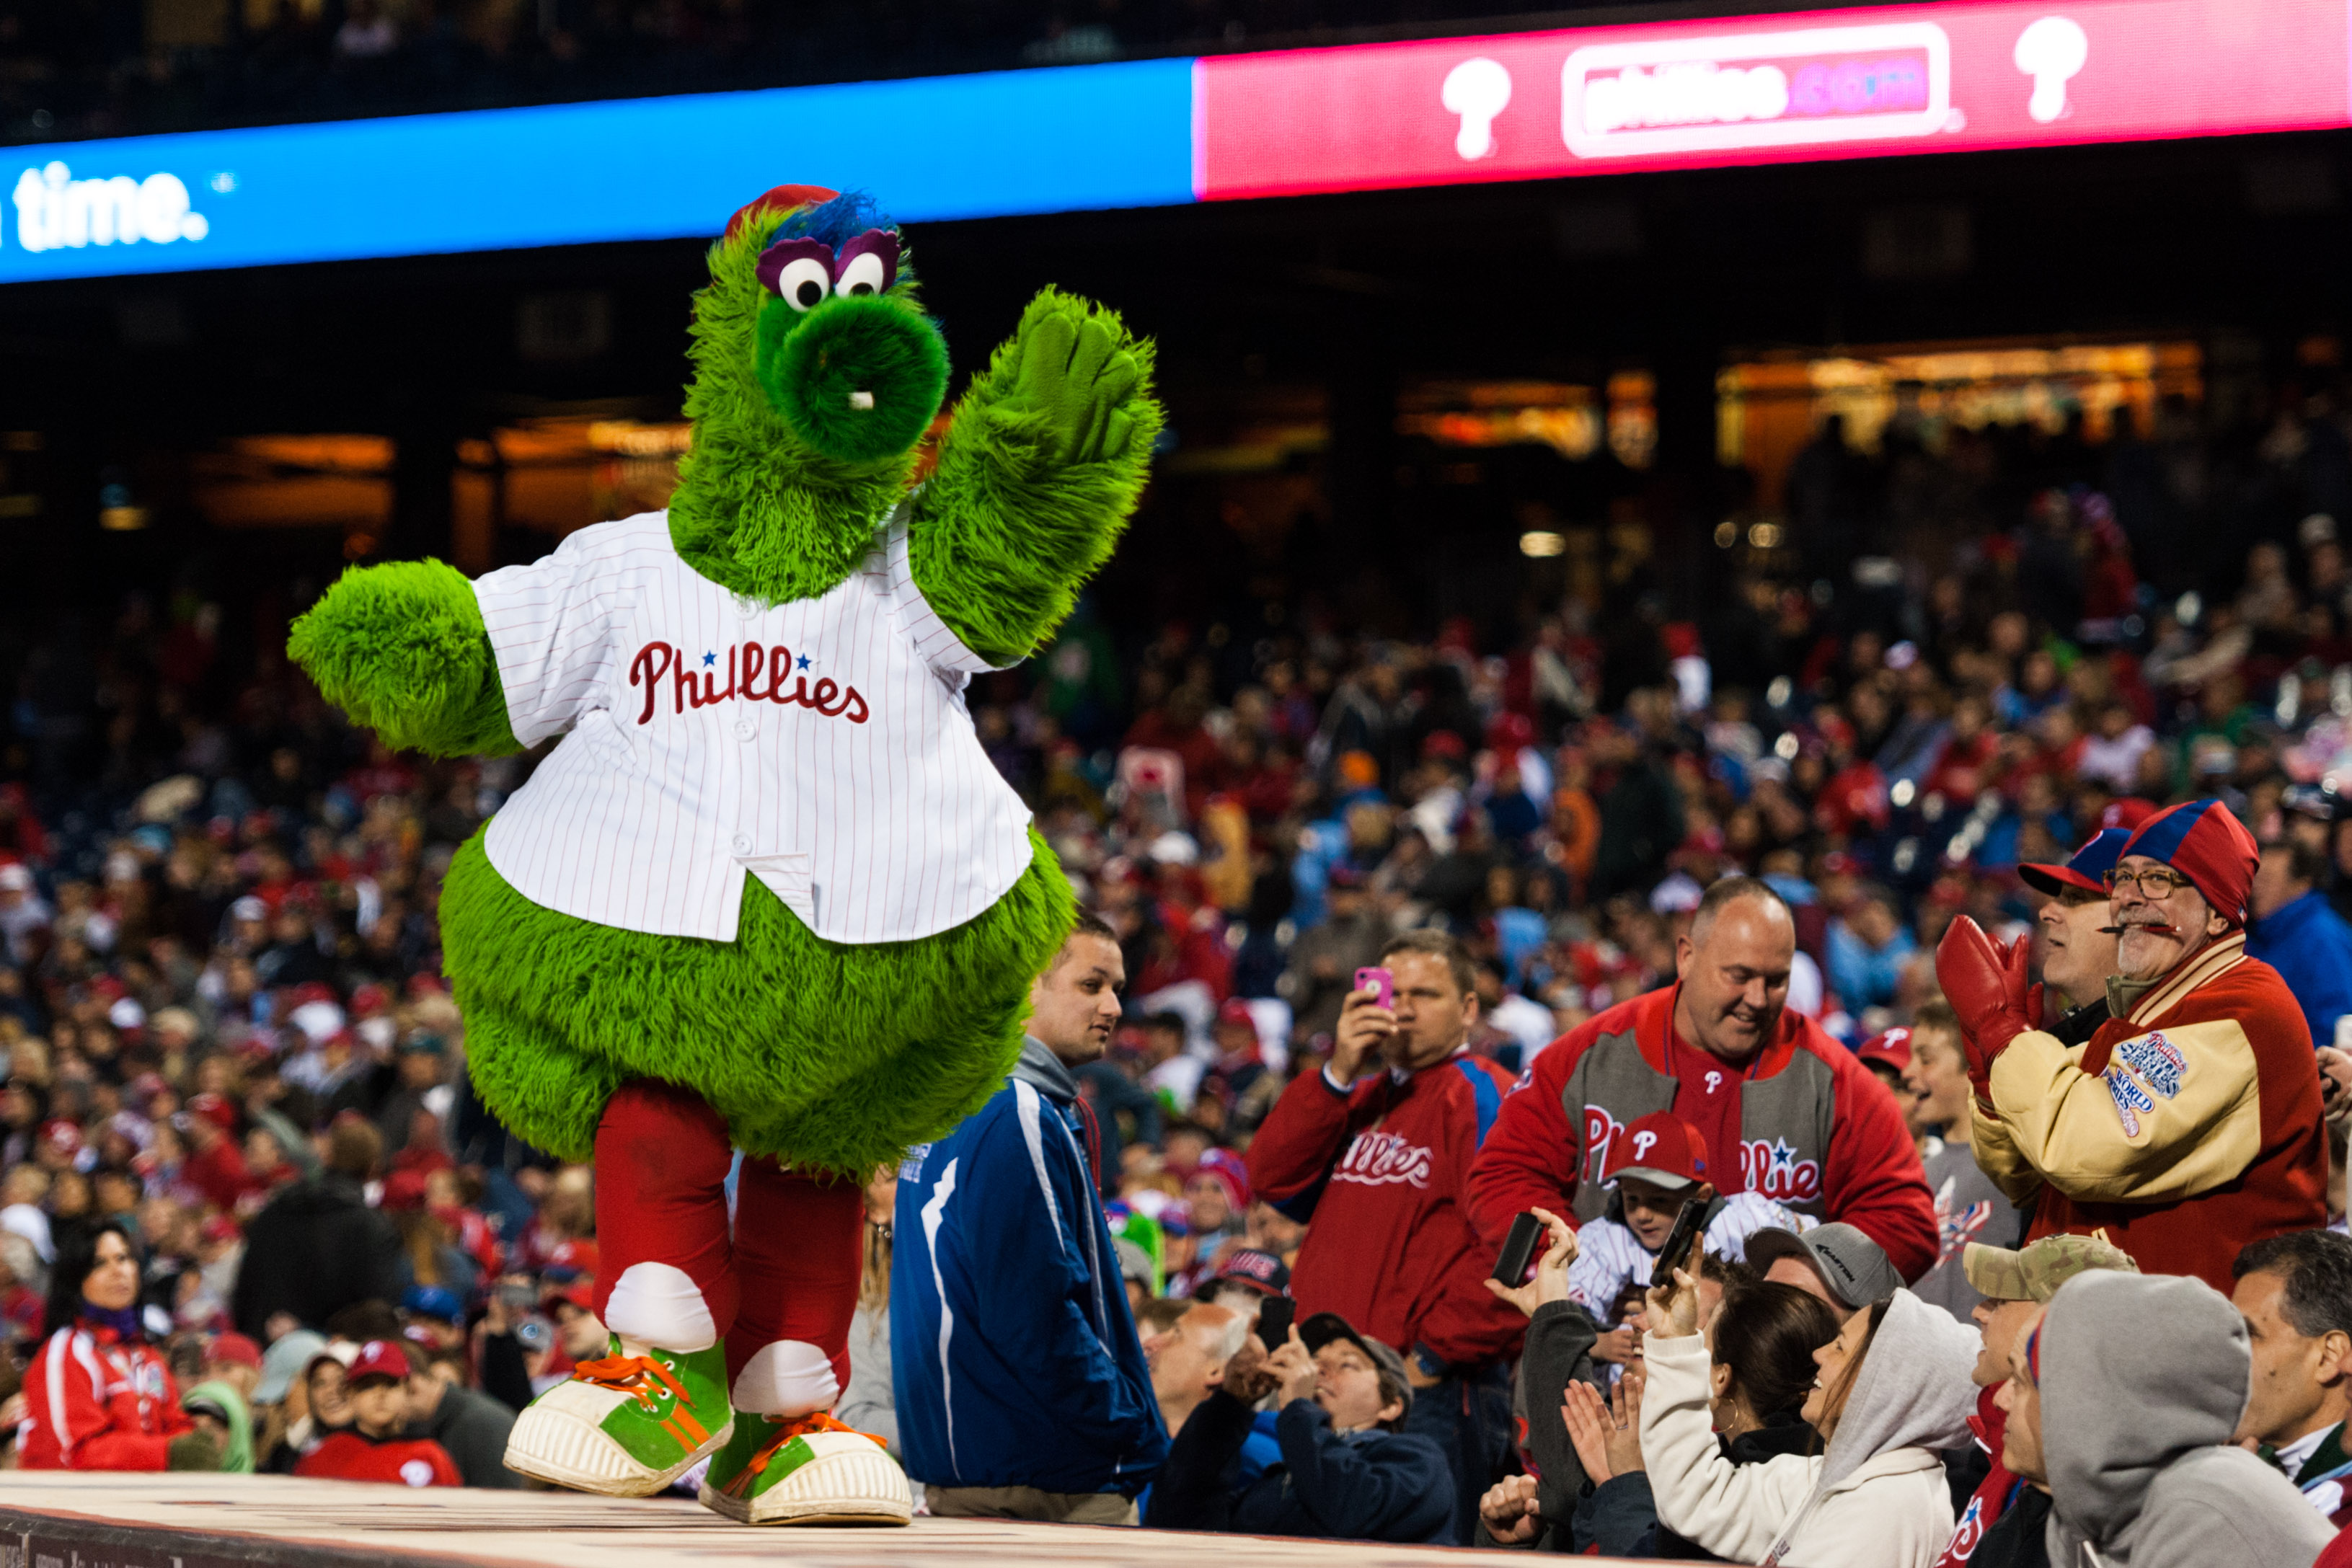 The Phanatic isn't the only one crazy about the Phillies. Philly's team could land a $5B TV deal. (USA Today Sports)